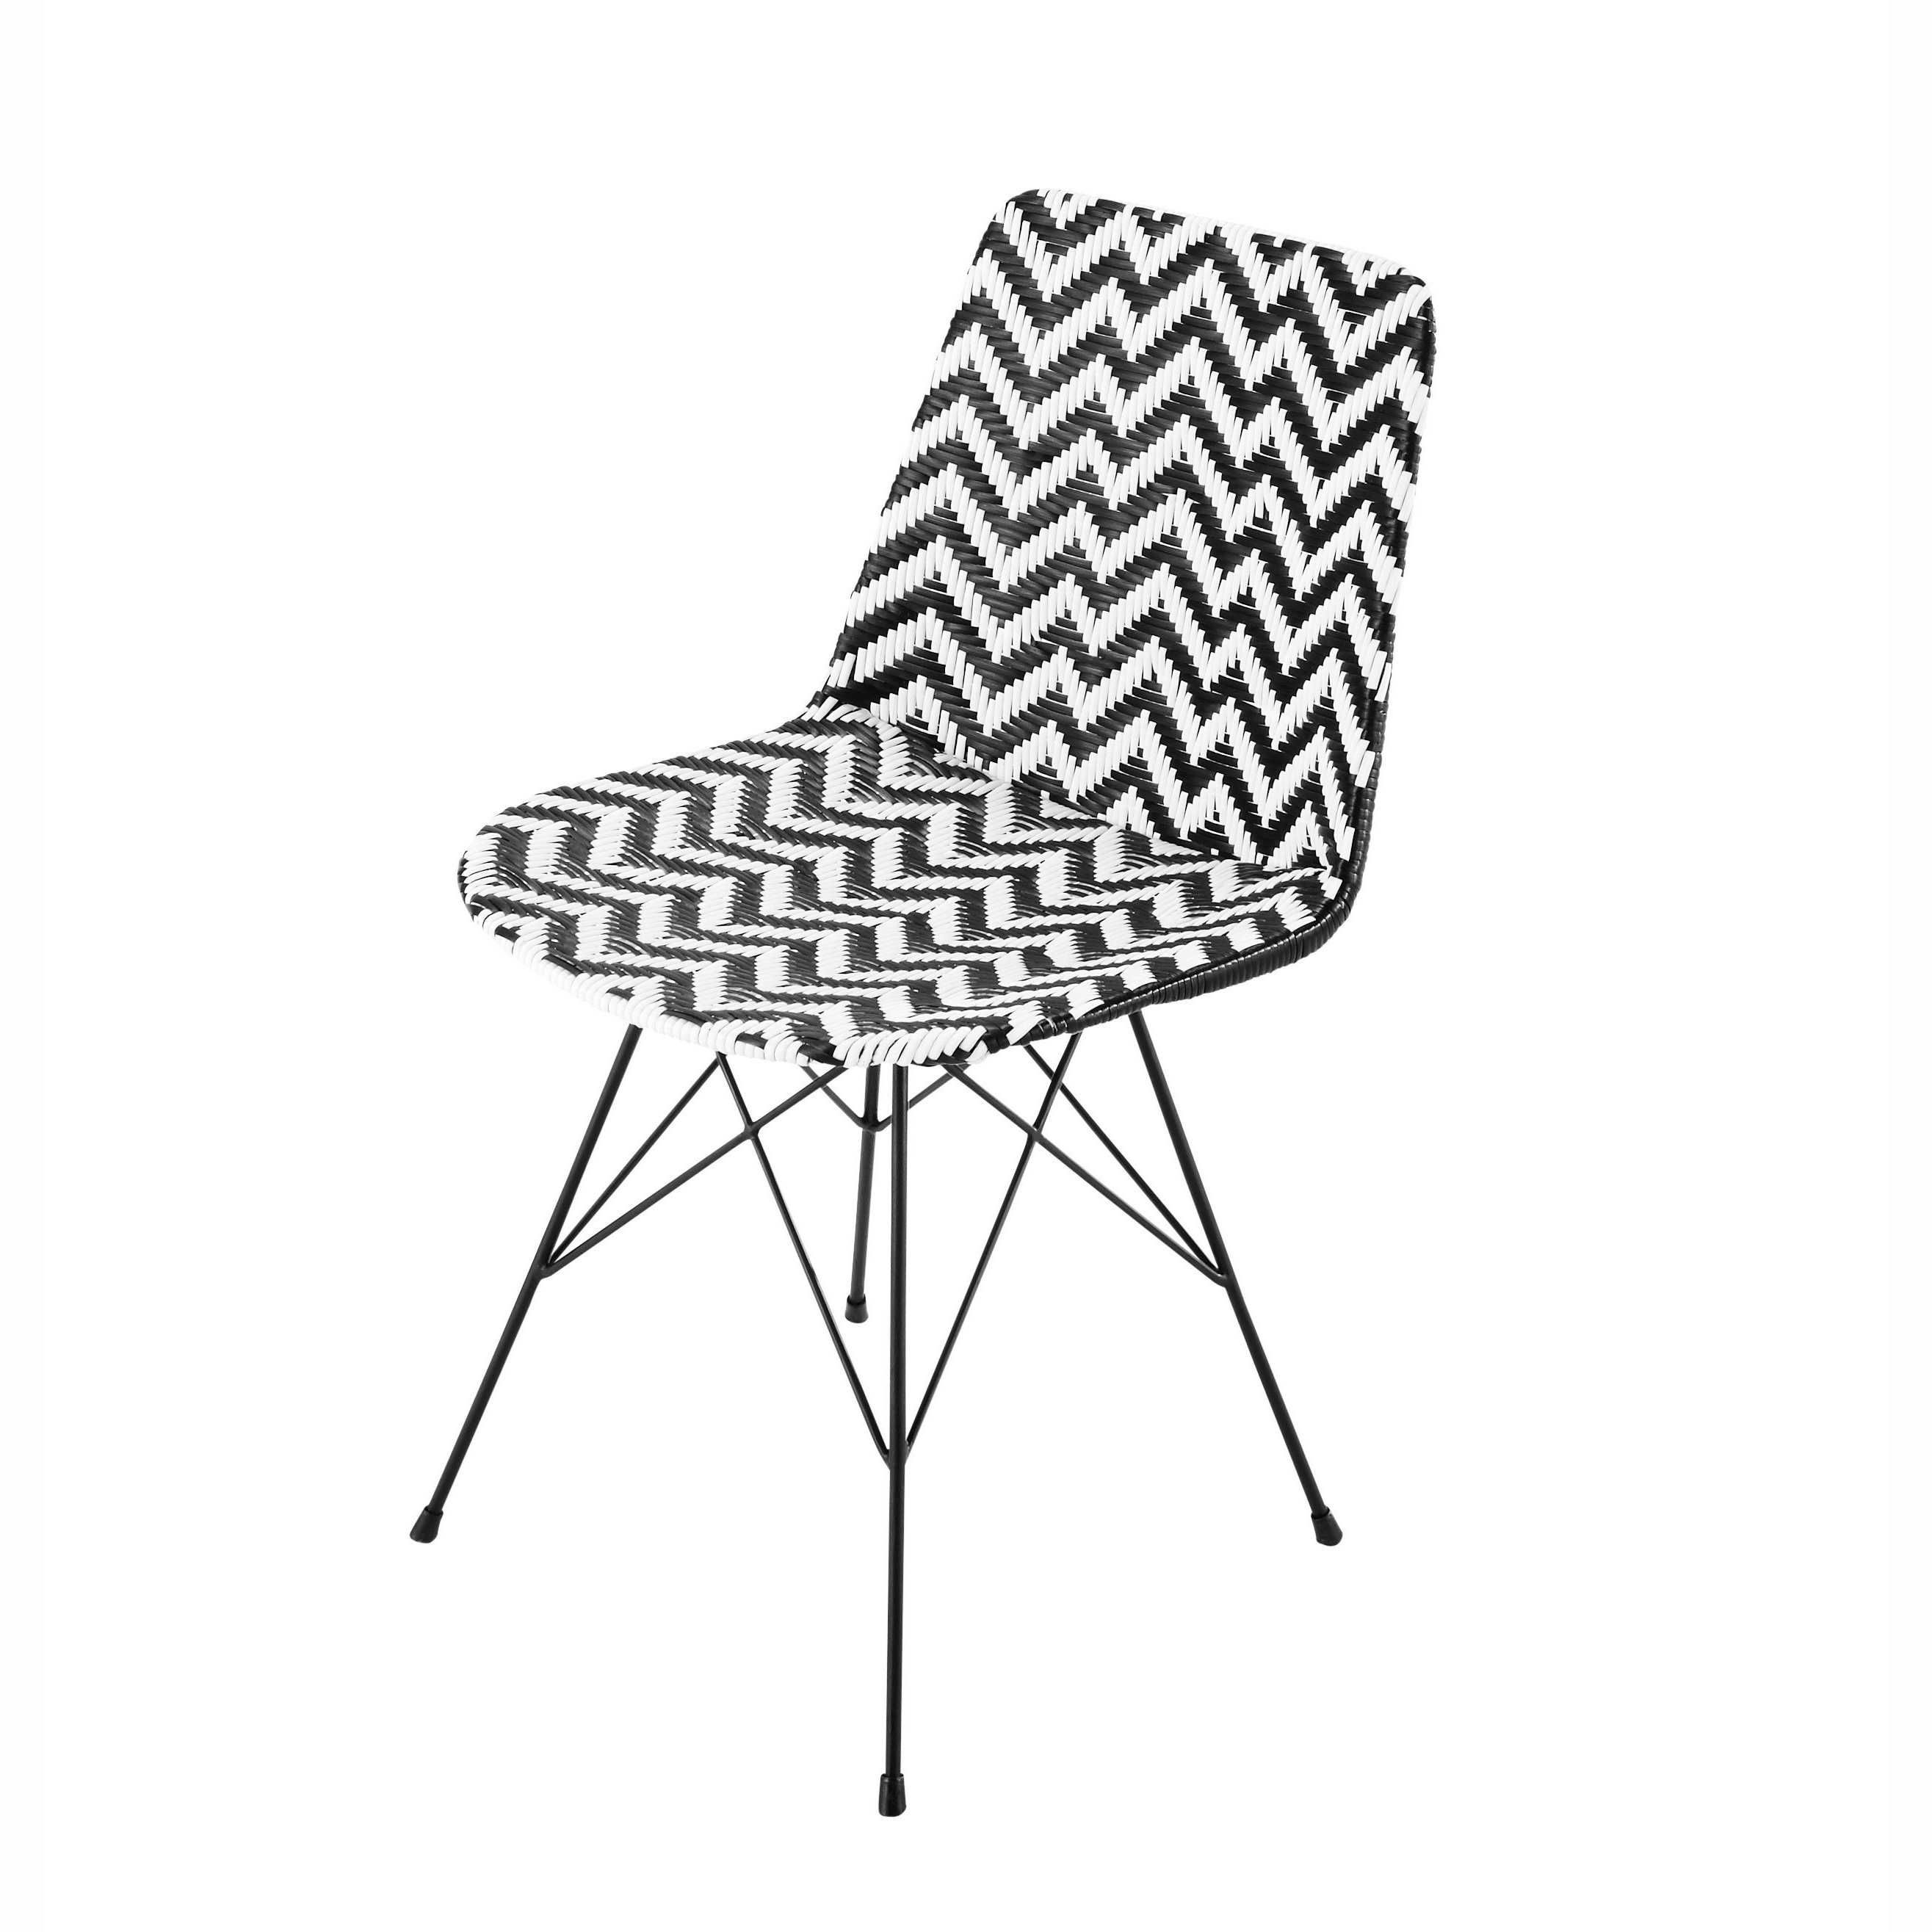 Wicker And Metal Chair In Black White Zigzag Chaise Metal Chaise Noire Chaise